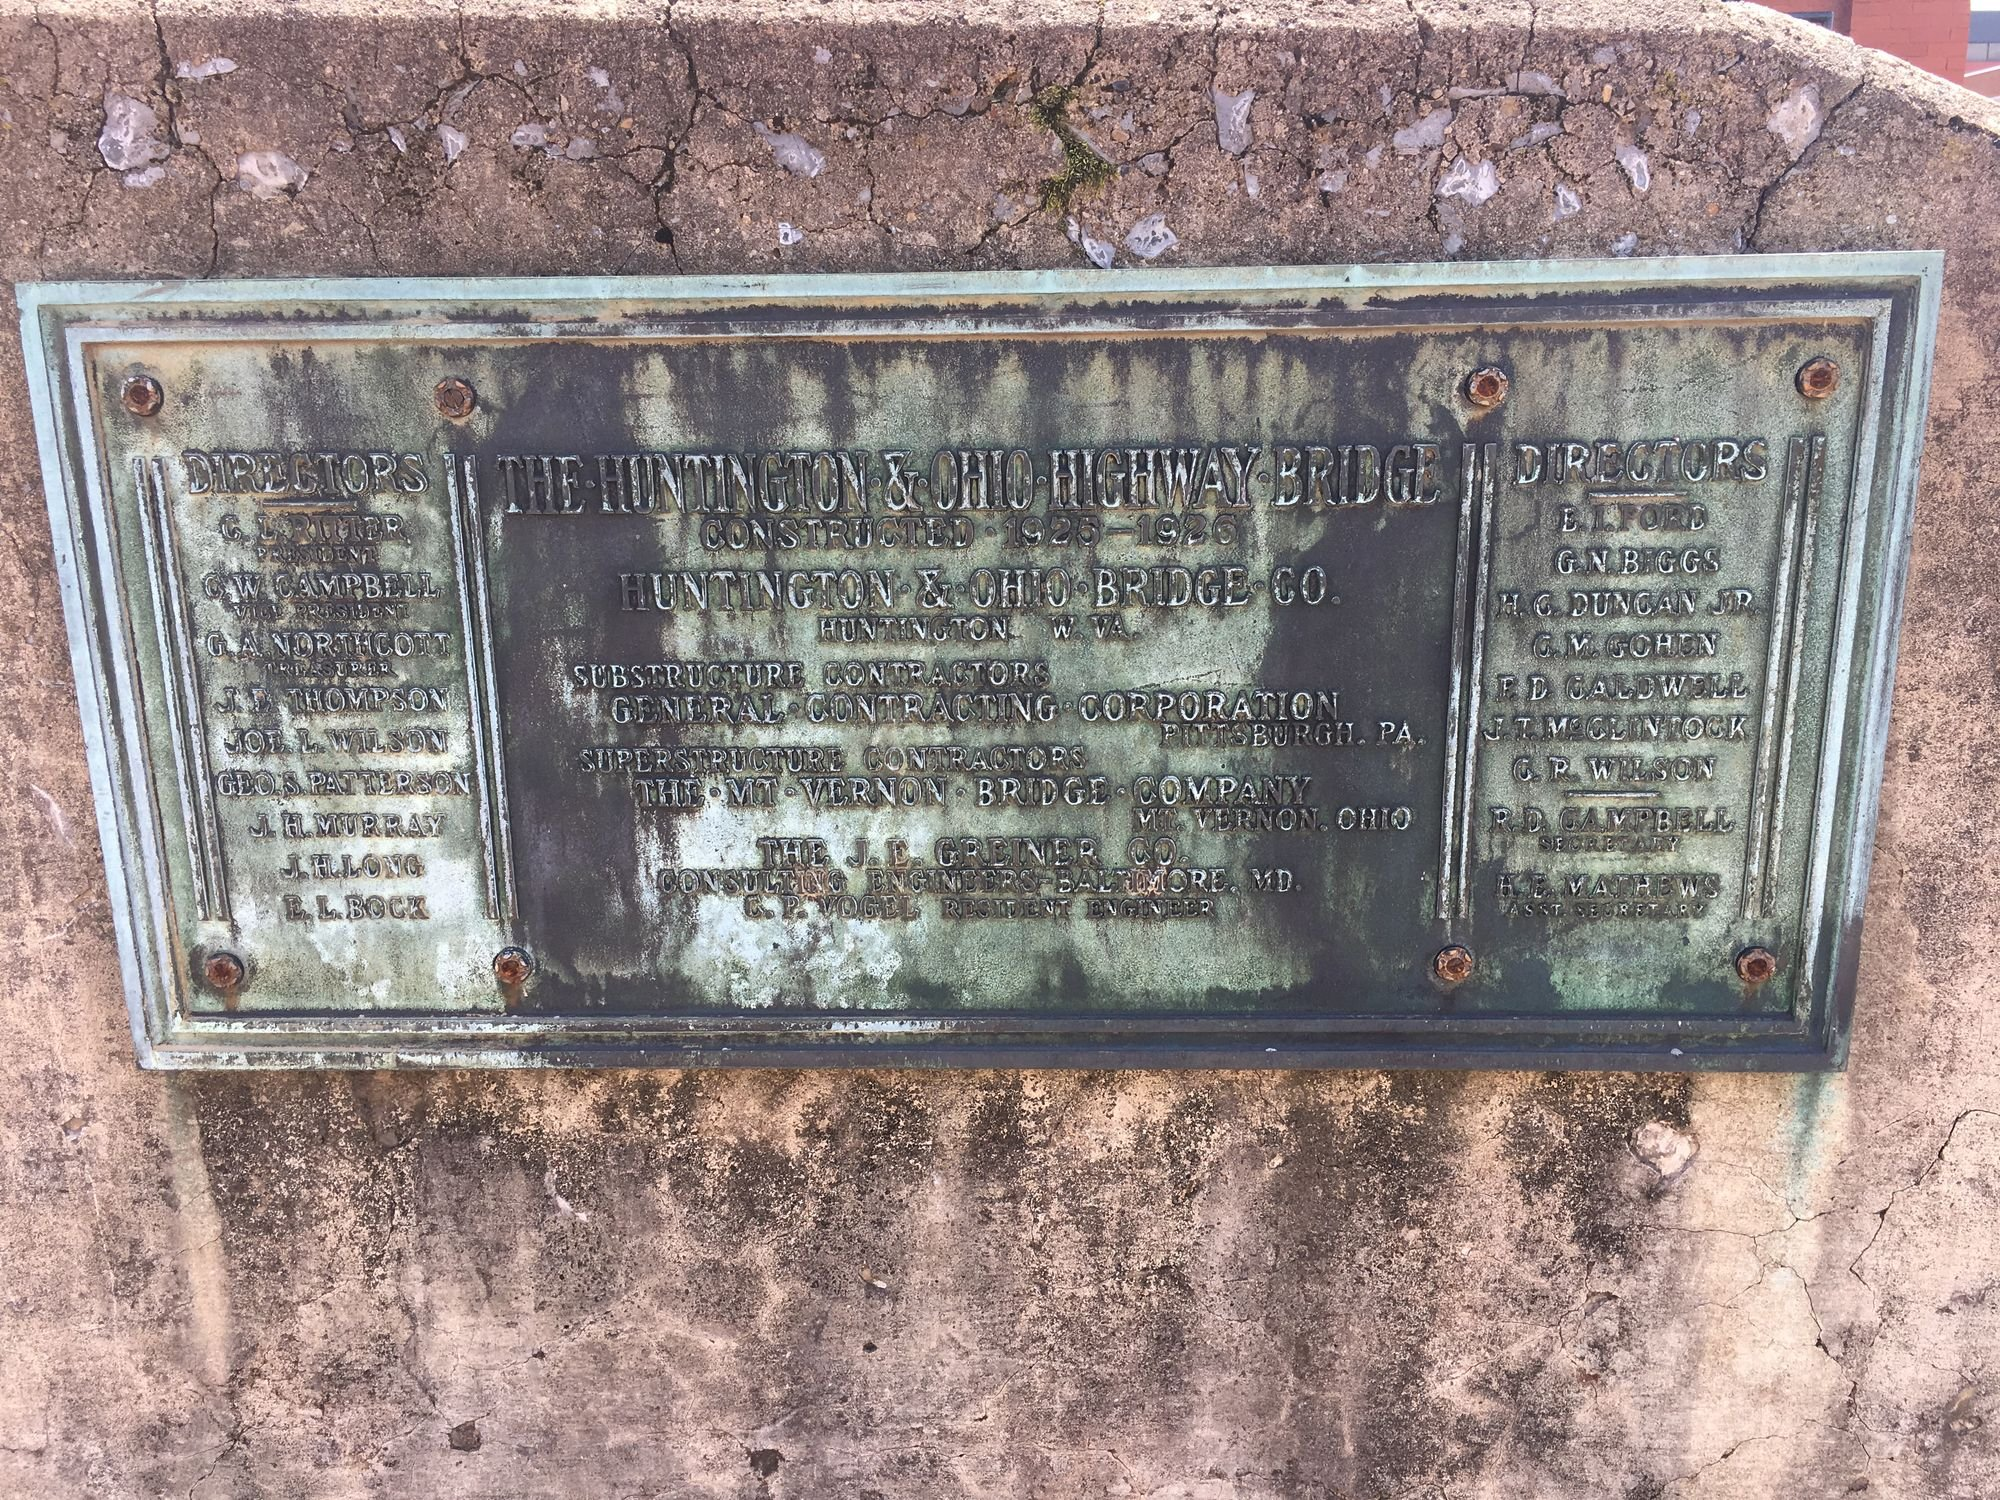 A surviving slab of concrete with the original bridge's dedication plaque is on display at Huntington's Heritage Station. Image courtesy of Steven Cody Straley.